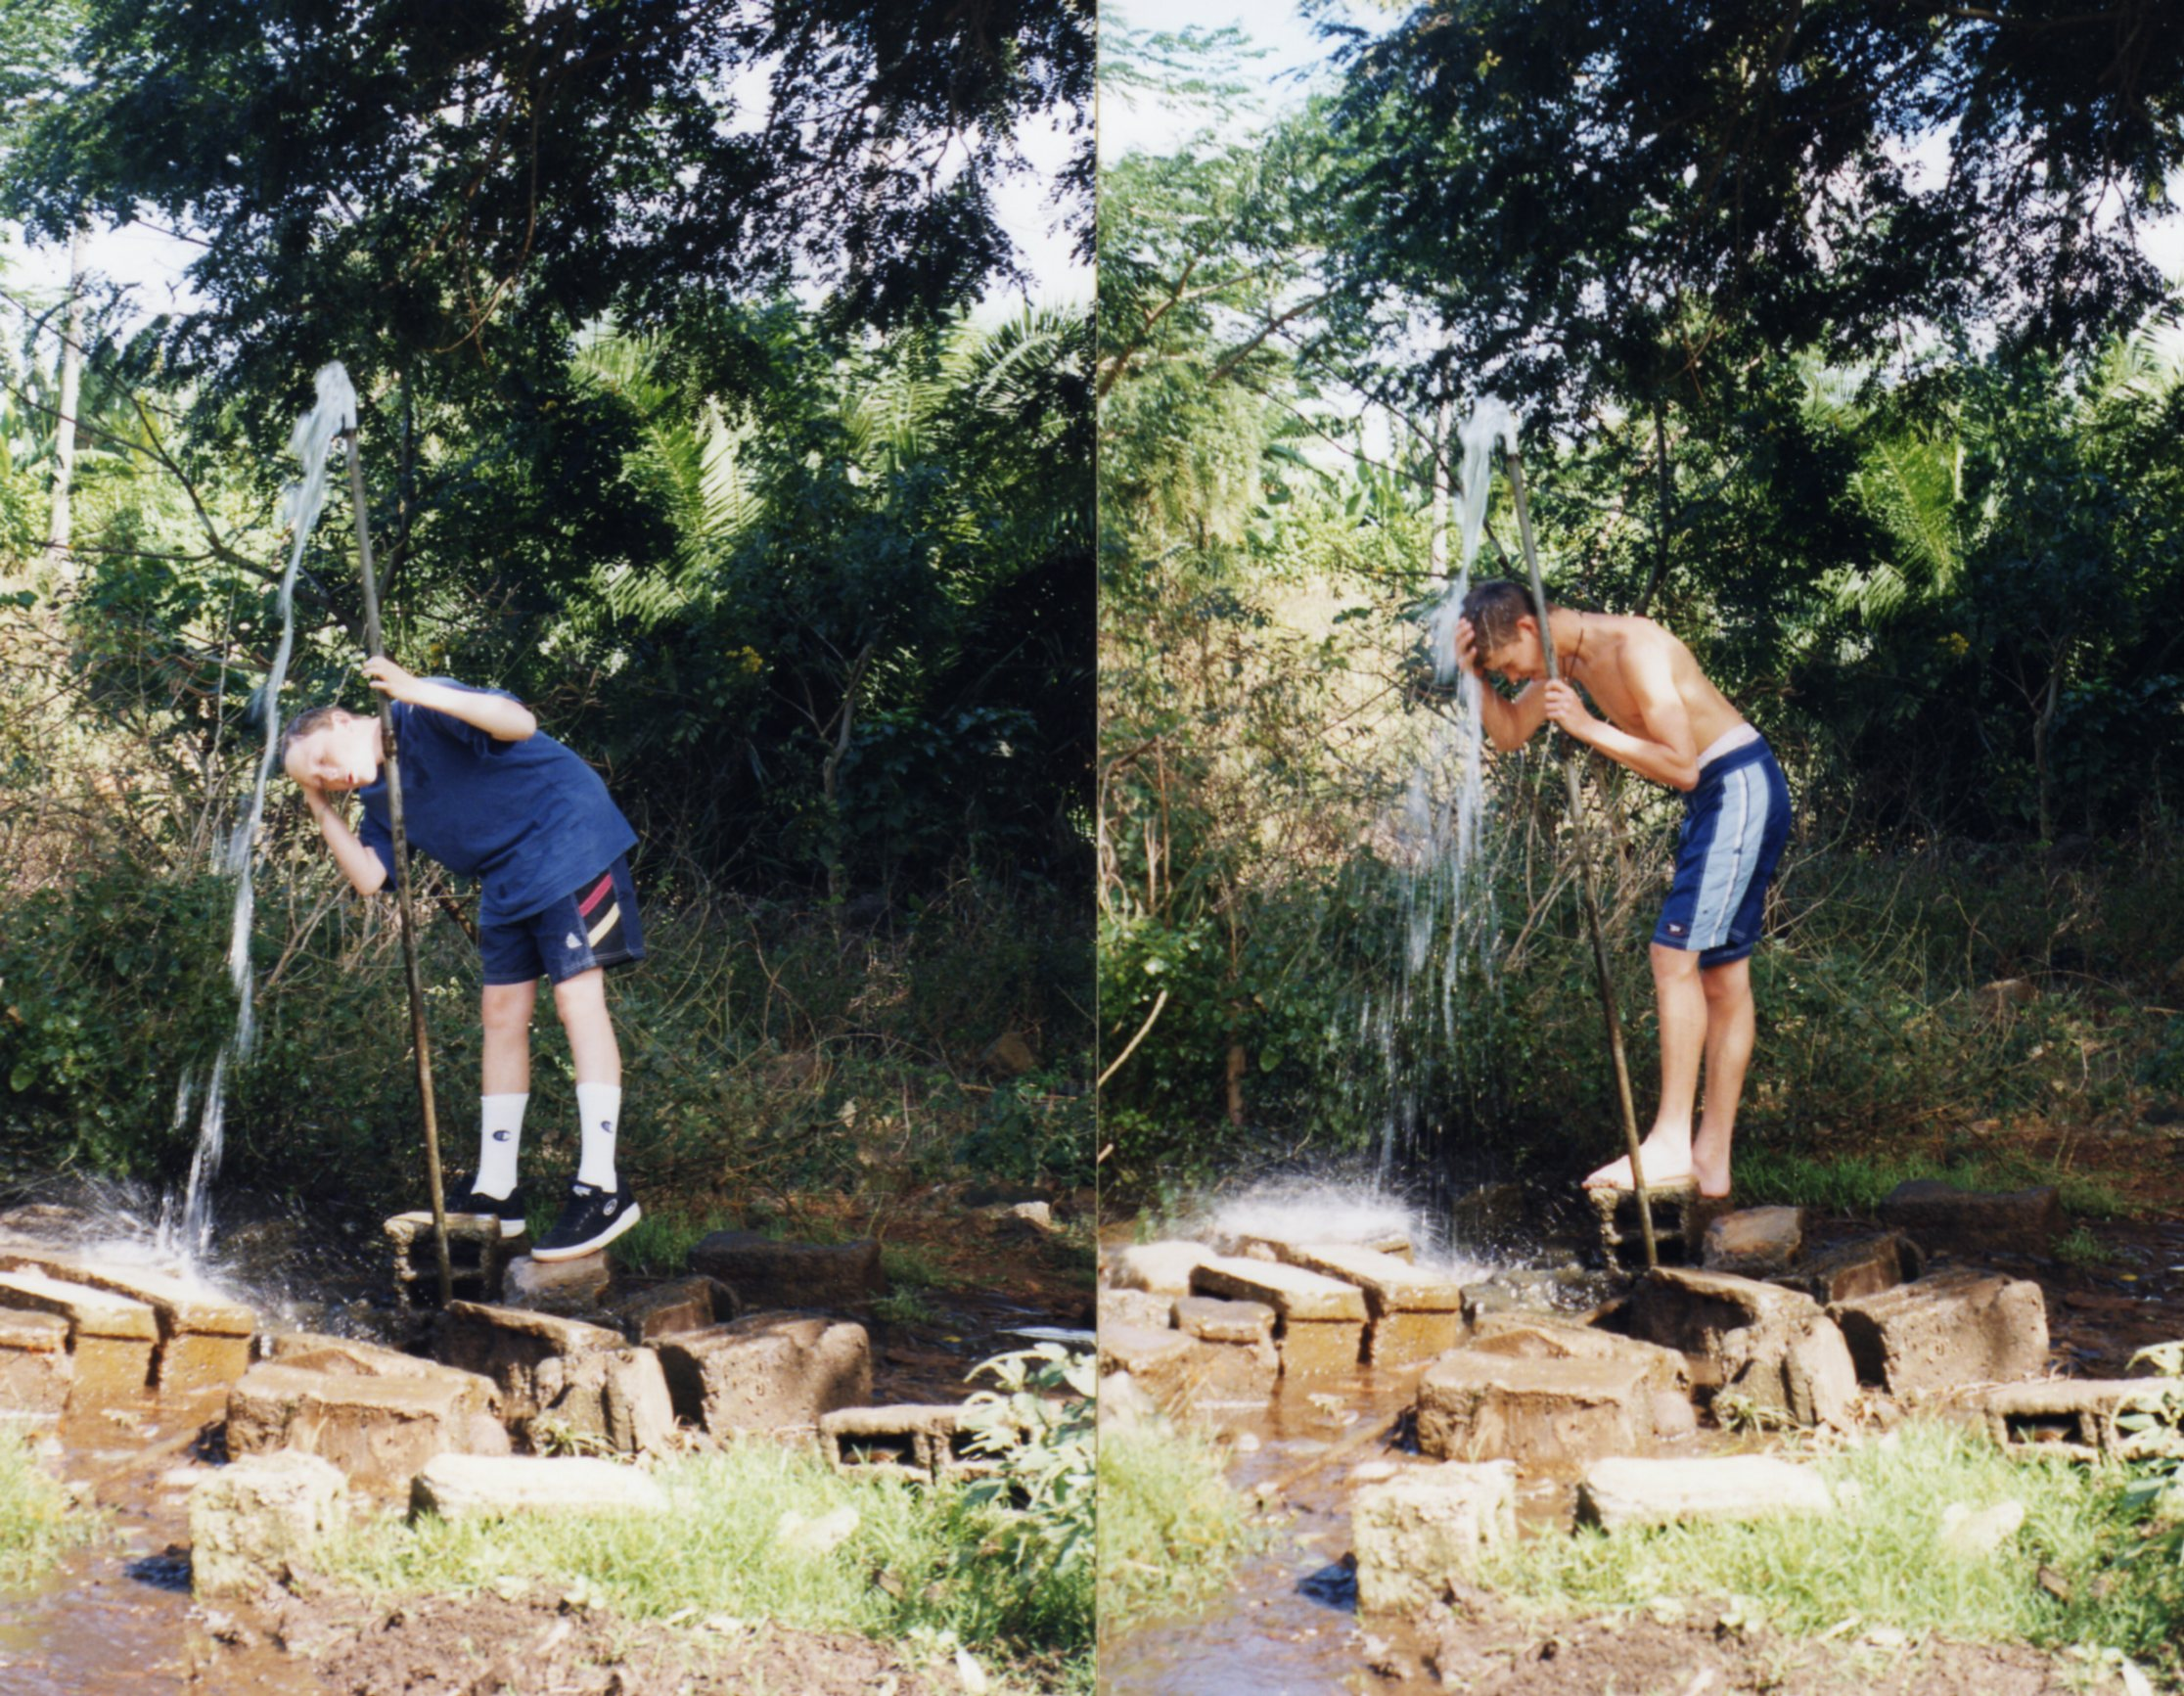 Showering in the luxury of fresh water - the water was left to run continuously